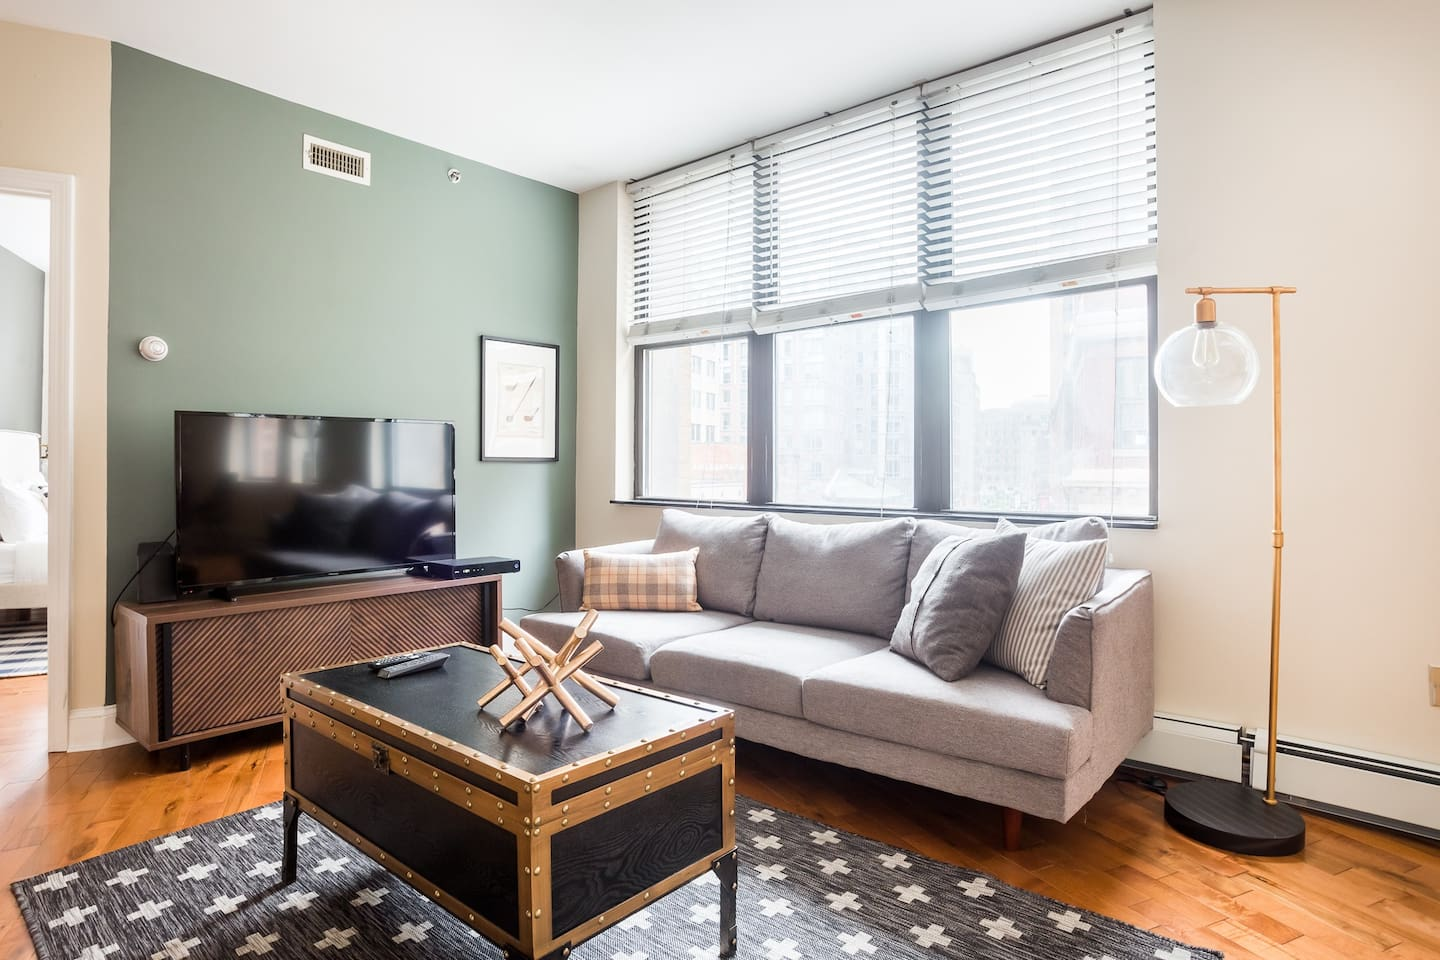 Newly refinished hardwood floors, cable tv and internet.  Living room has additional seating area.